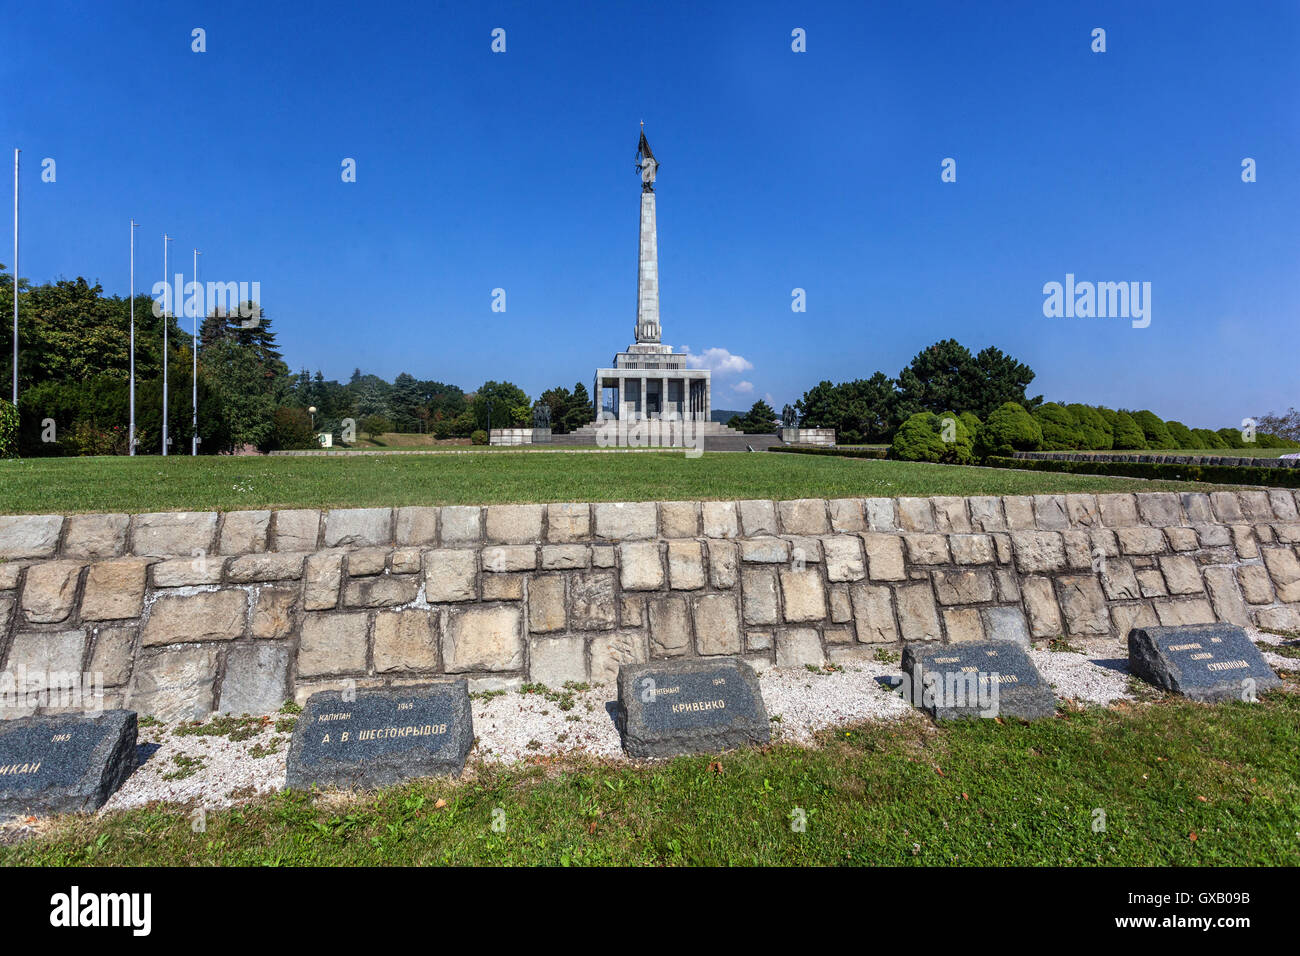 Hill Slavin, a monument to Soviet soldiers killed in World War II